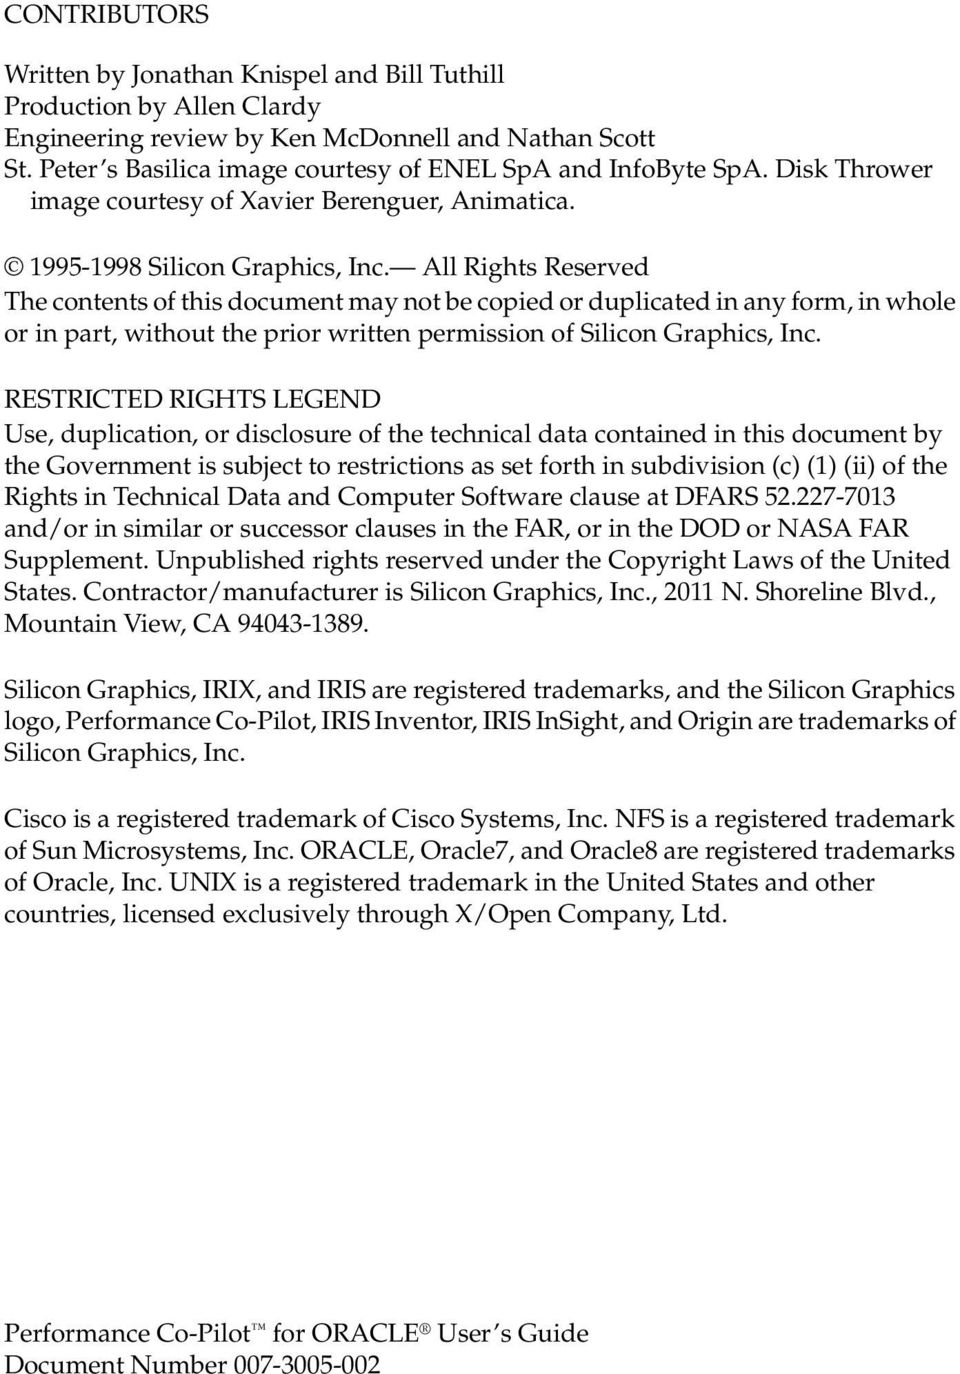 All Rights Reserved The contents of this document may not be copied or duplicated in any form, in whole or in part, without the prior written permission of Silicon Graphics, Inc.